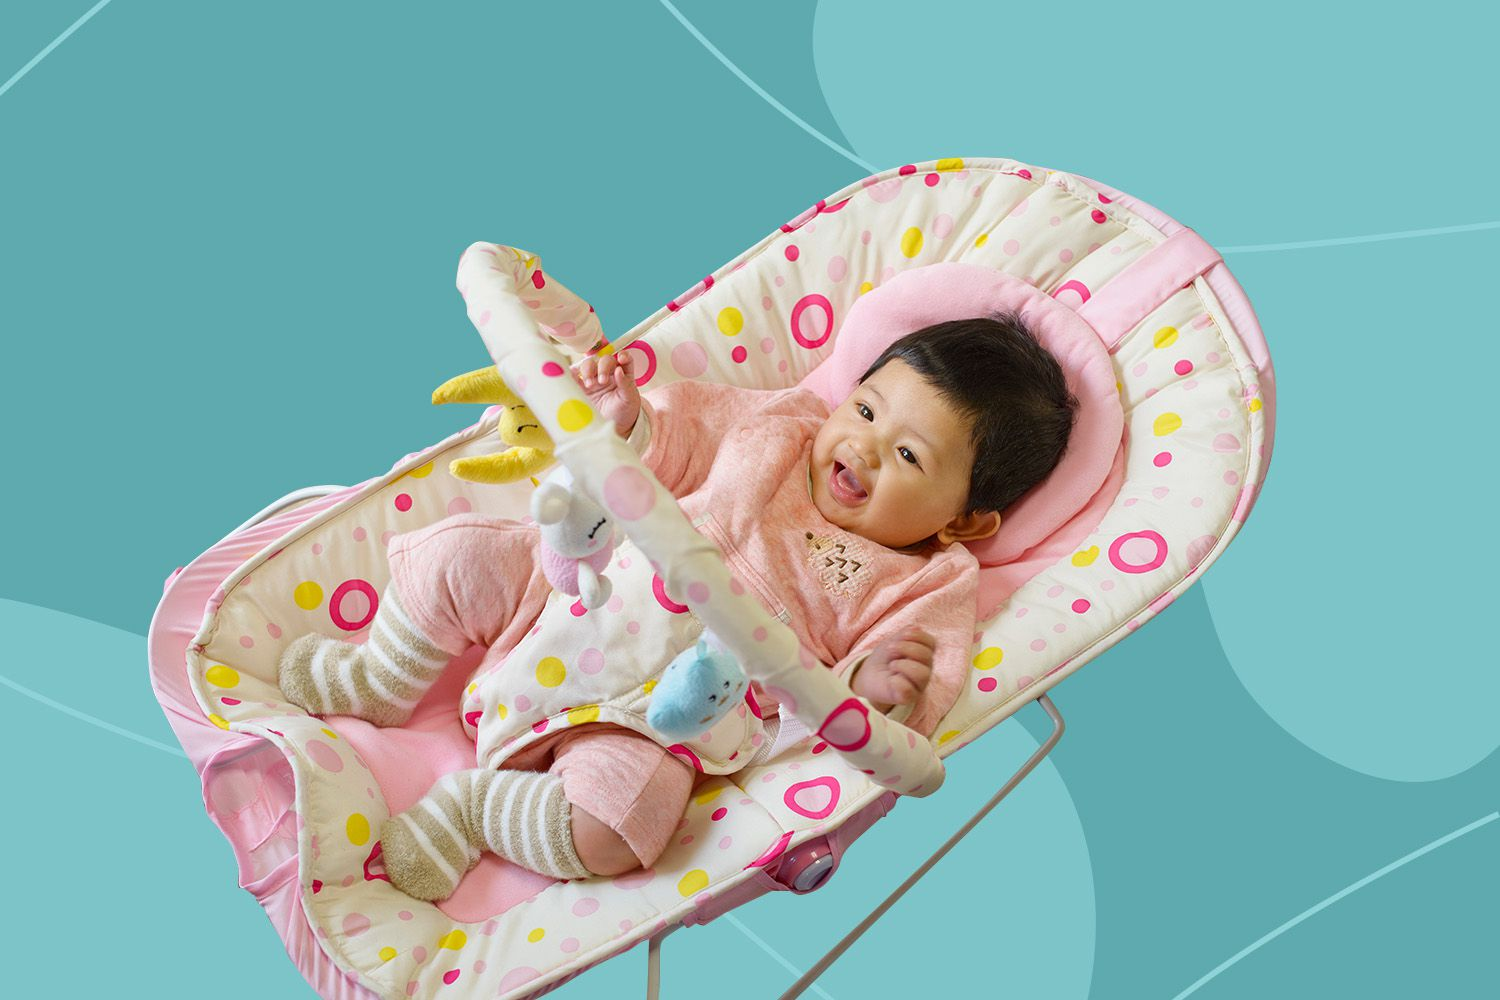 Advanced Automatic Wind Up Baby Swing For Your Kid